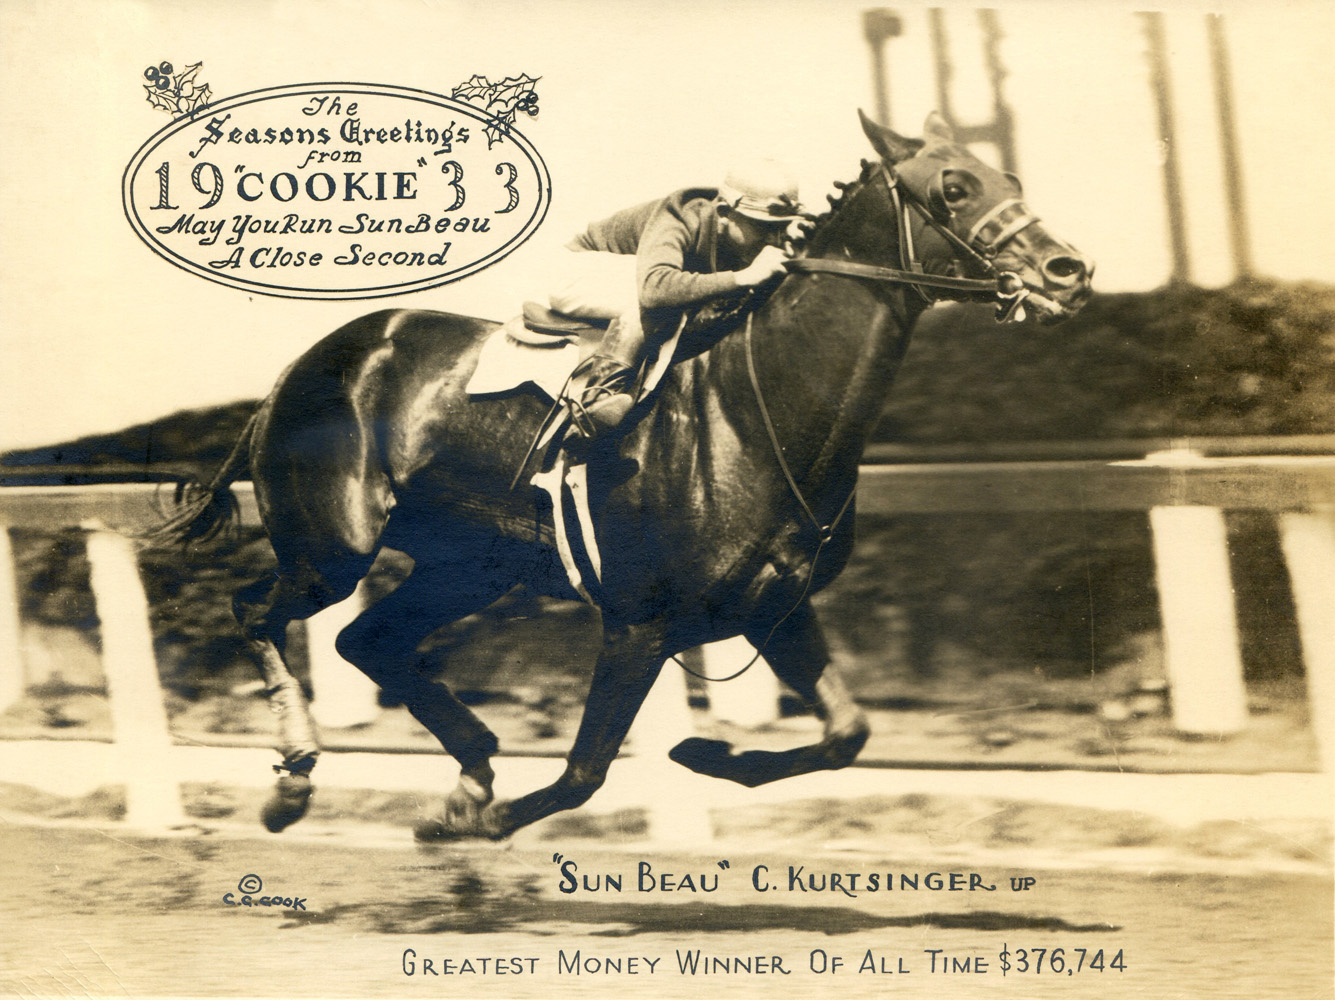 """Sun Beau with Charles Kurtsinger up featured in the 1933 """"Christmas Cookie"""" greeting card produced by photographer C. C. Cook (C. C. Cook/Museum Collection)"""